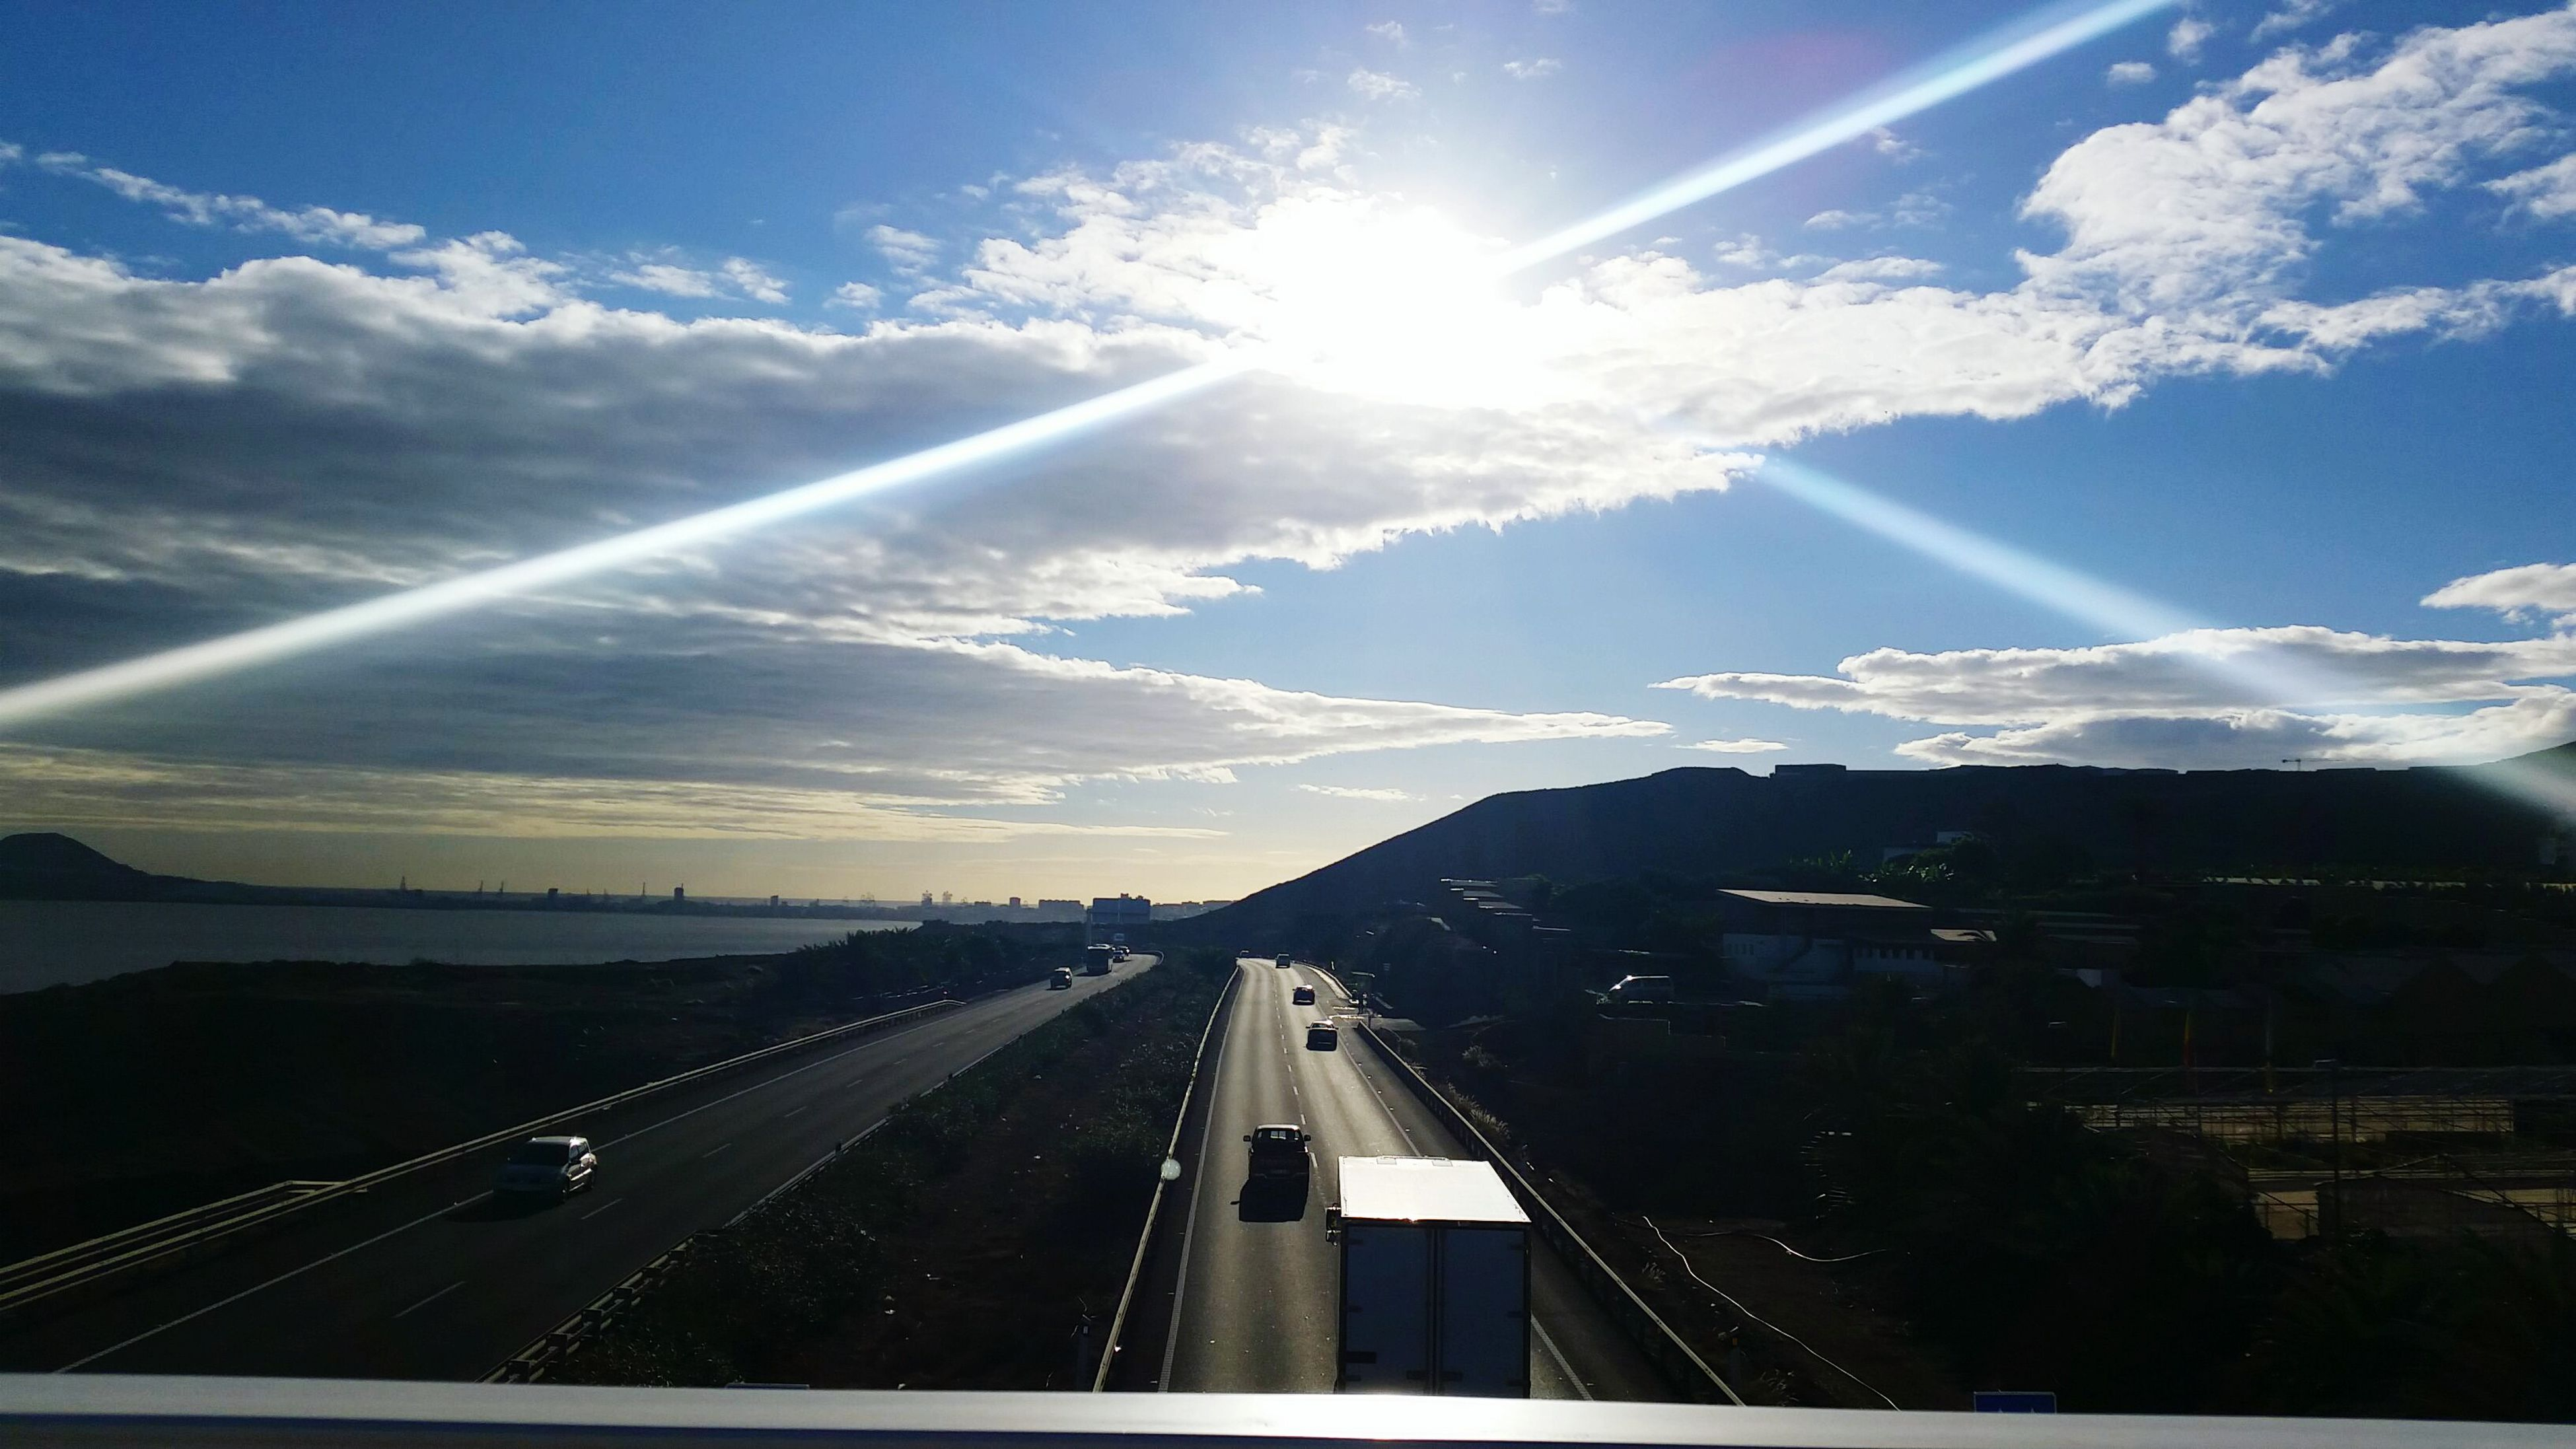 transportation, sunbeam, sky, sun, sunlight, the way forward, vanishing point, cloud - sky, mode of transport, diminishing perspective, lens flare, road, cloud, travel, highway, on the move, journey, nature, glass - material, day